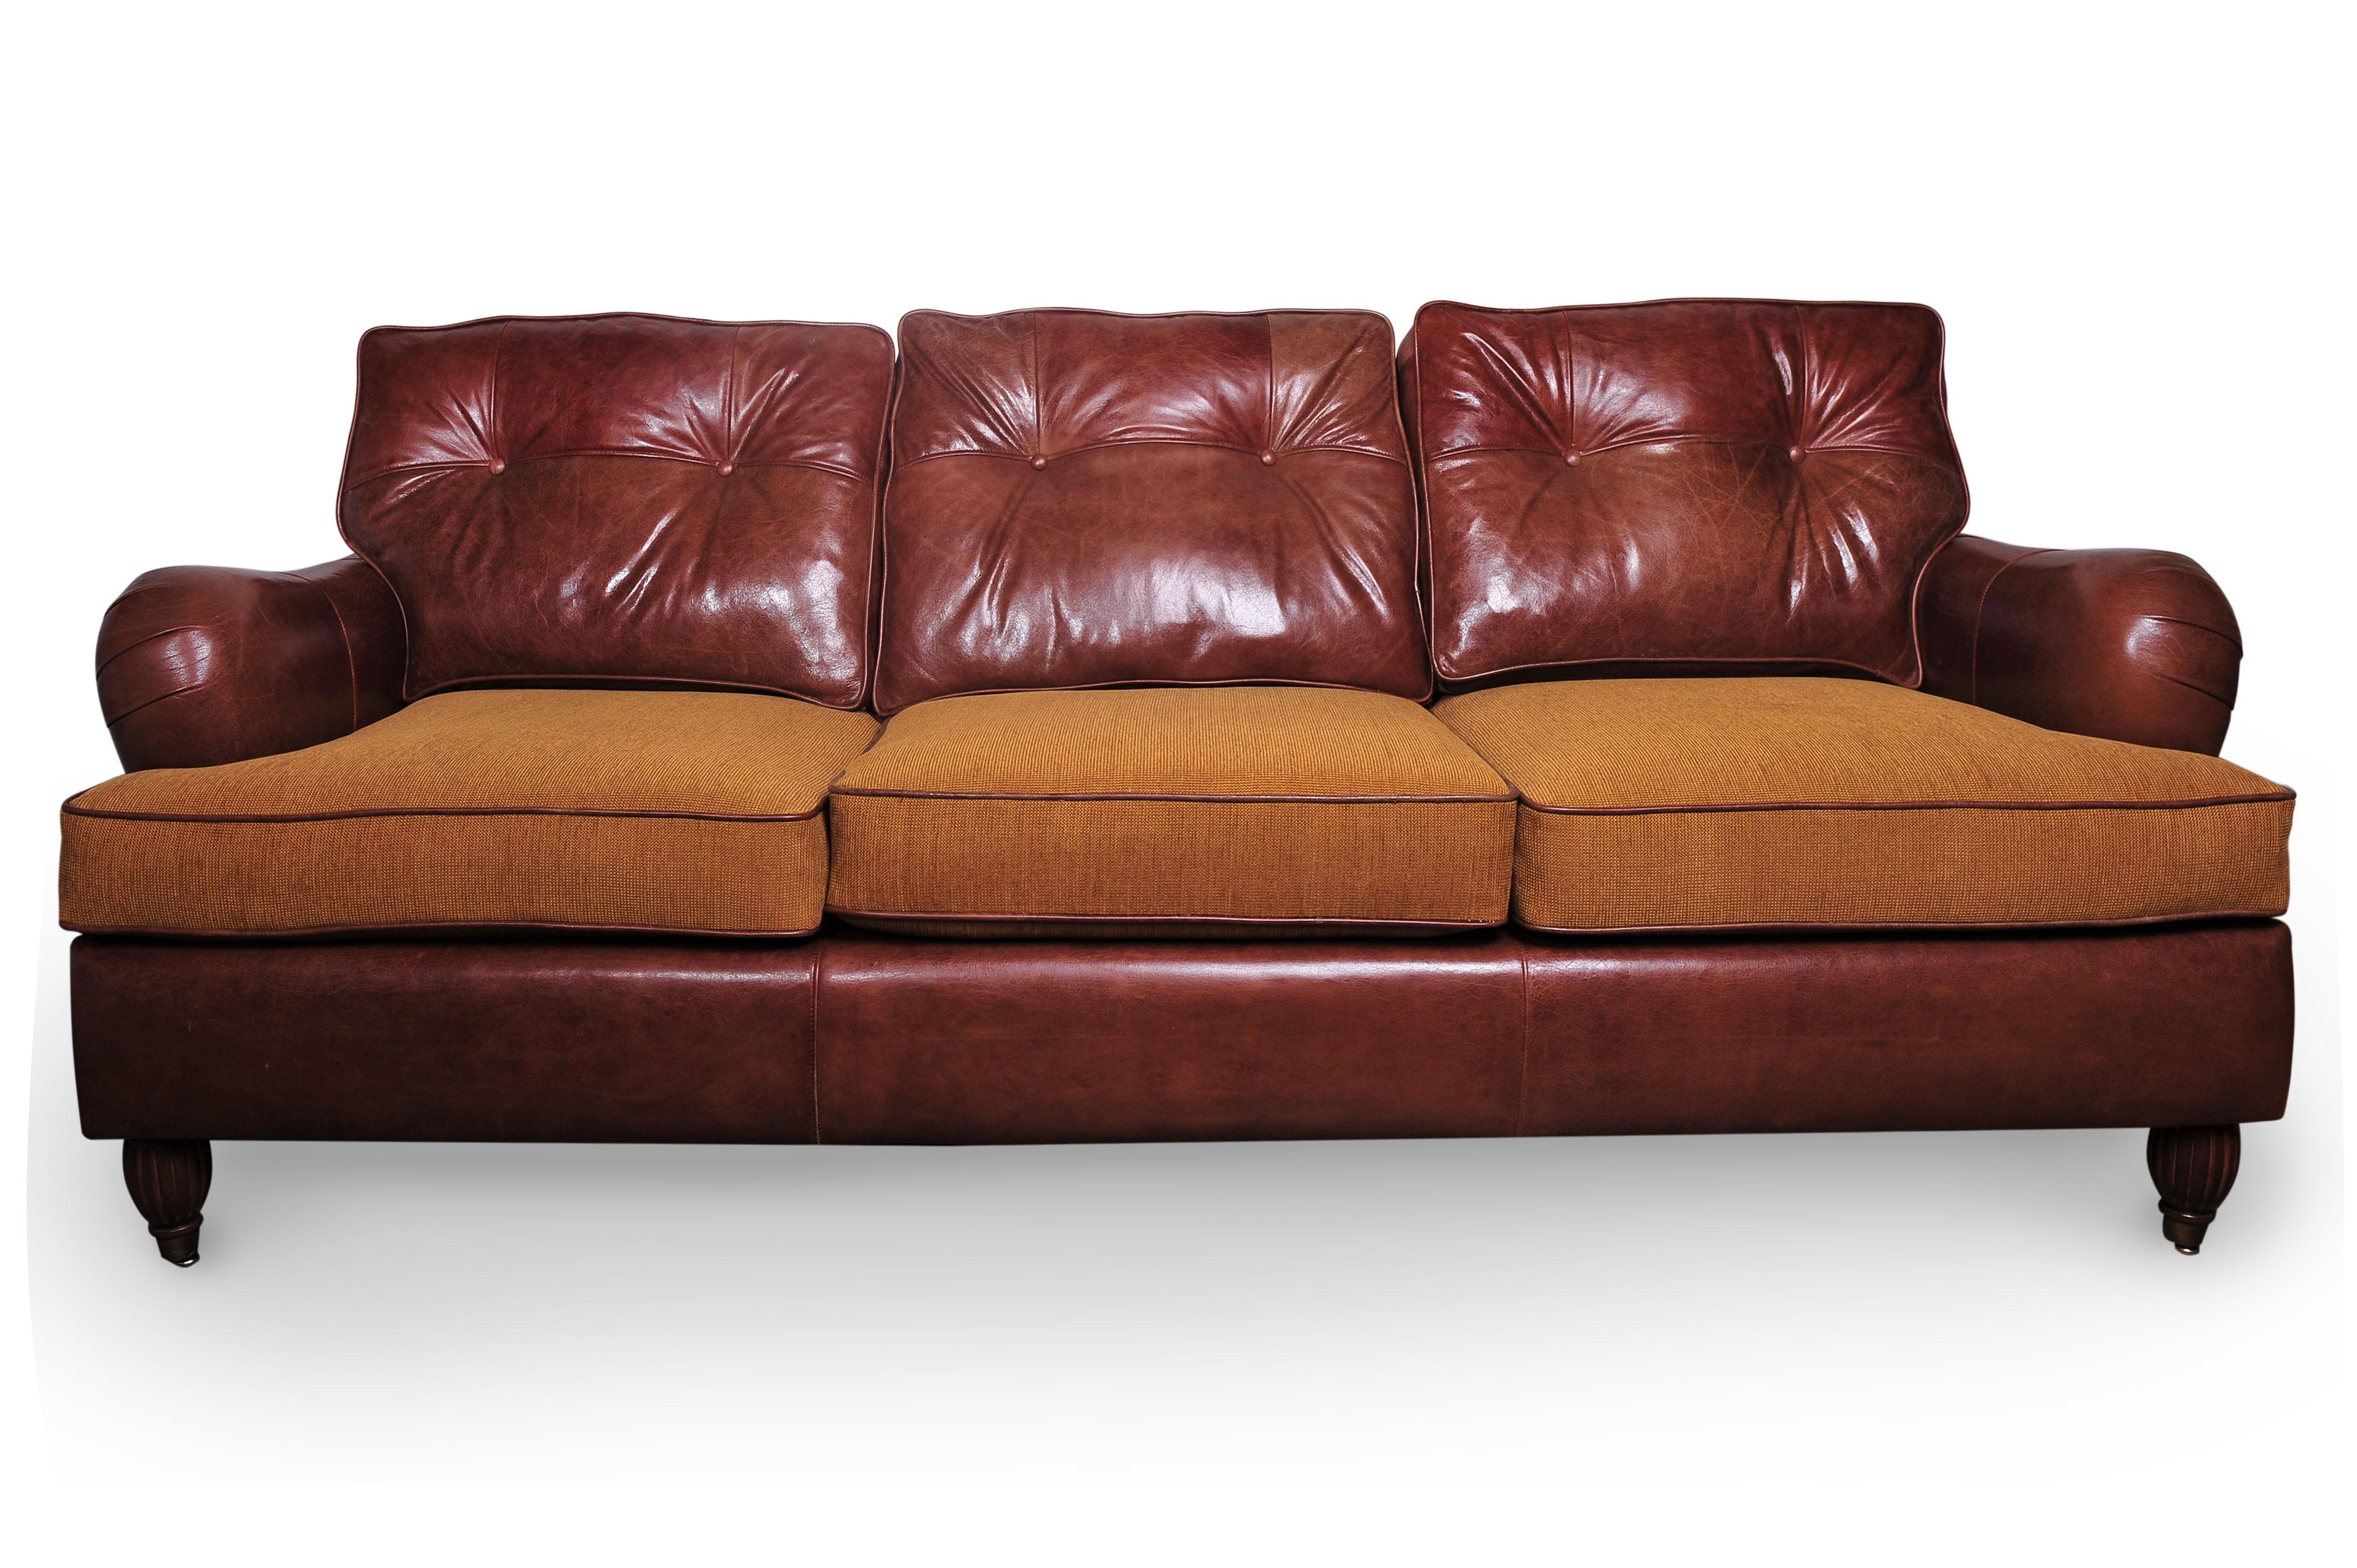 Ordinaire This Is A Very Comfortable English Rolled Arm Sofa. Newly Re Upholstered In  Genuine